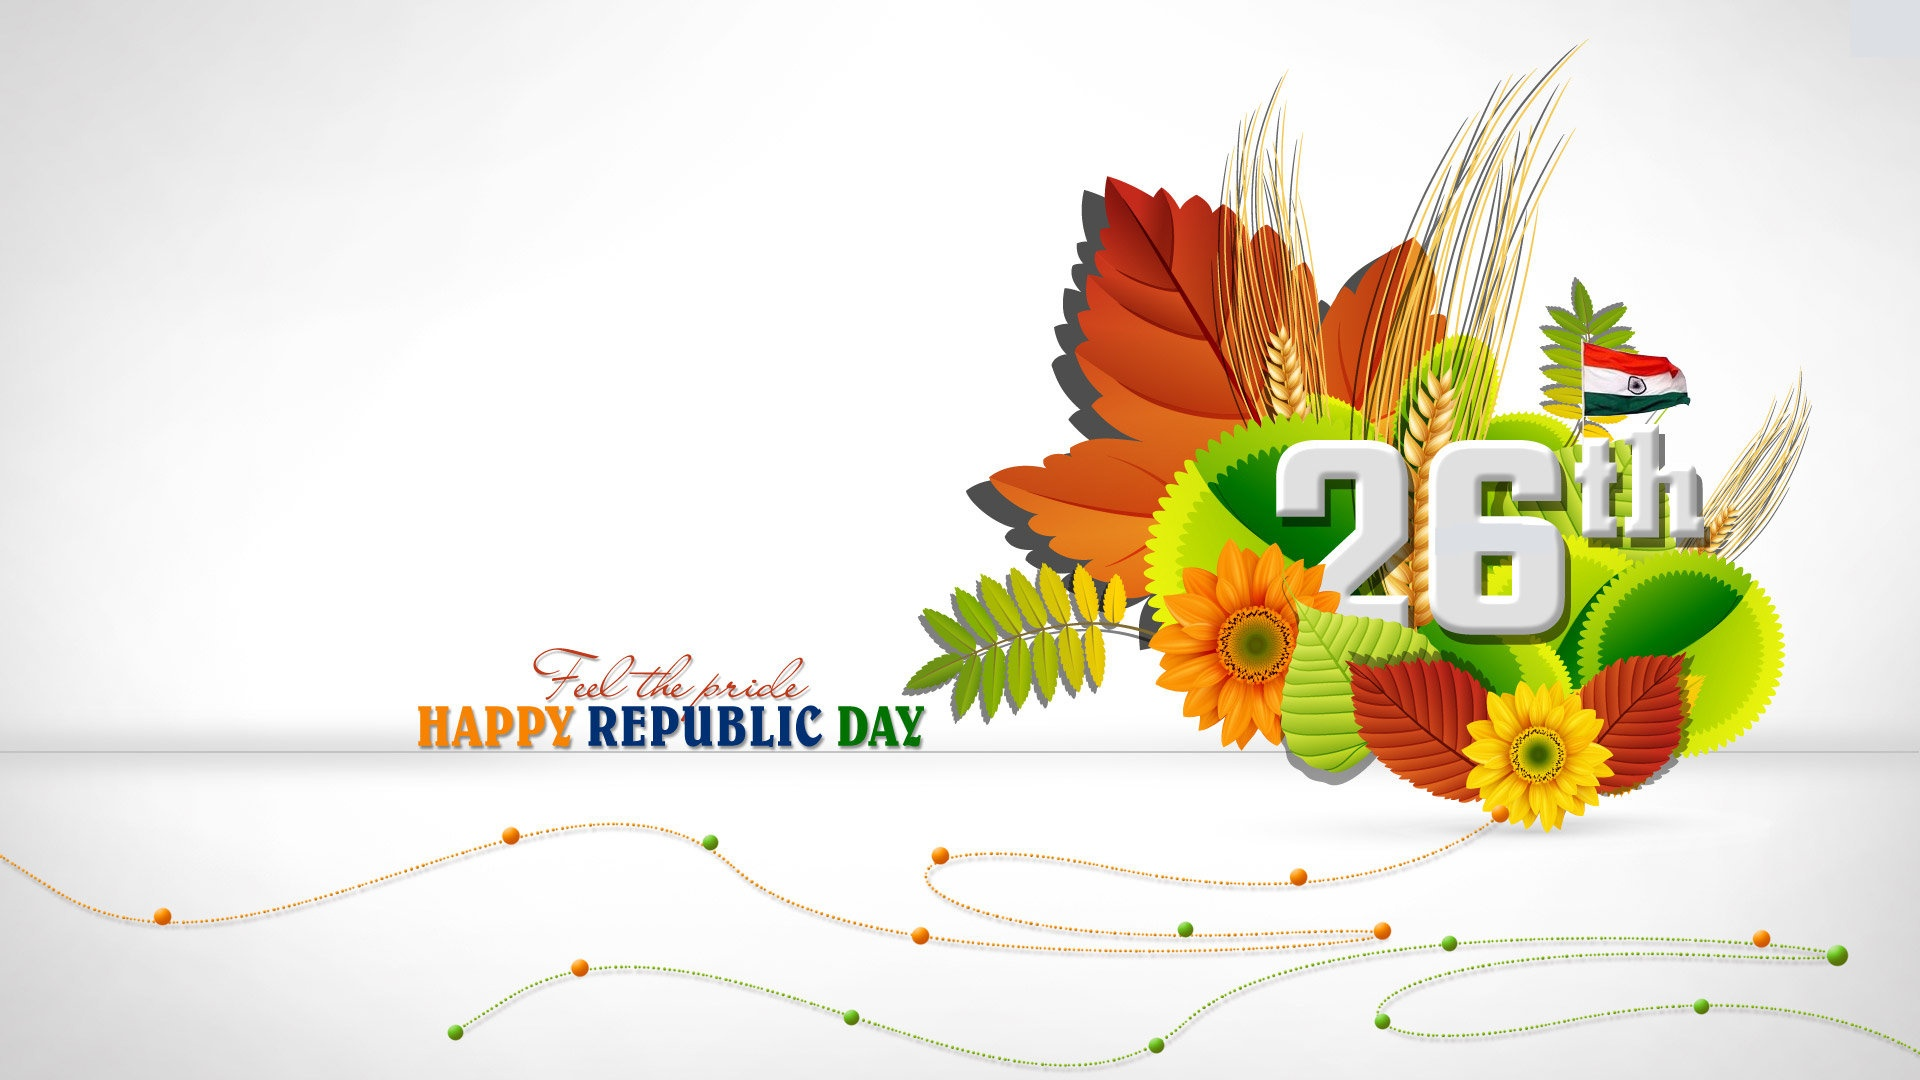 january hq wallpaper. 2016 clipart republic day